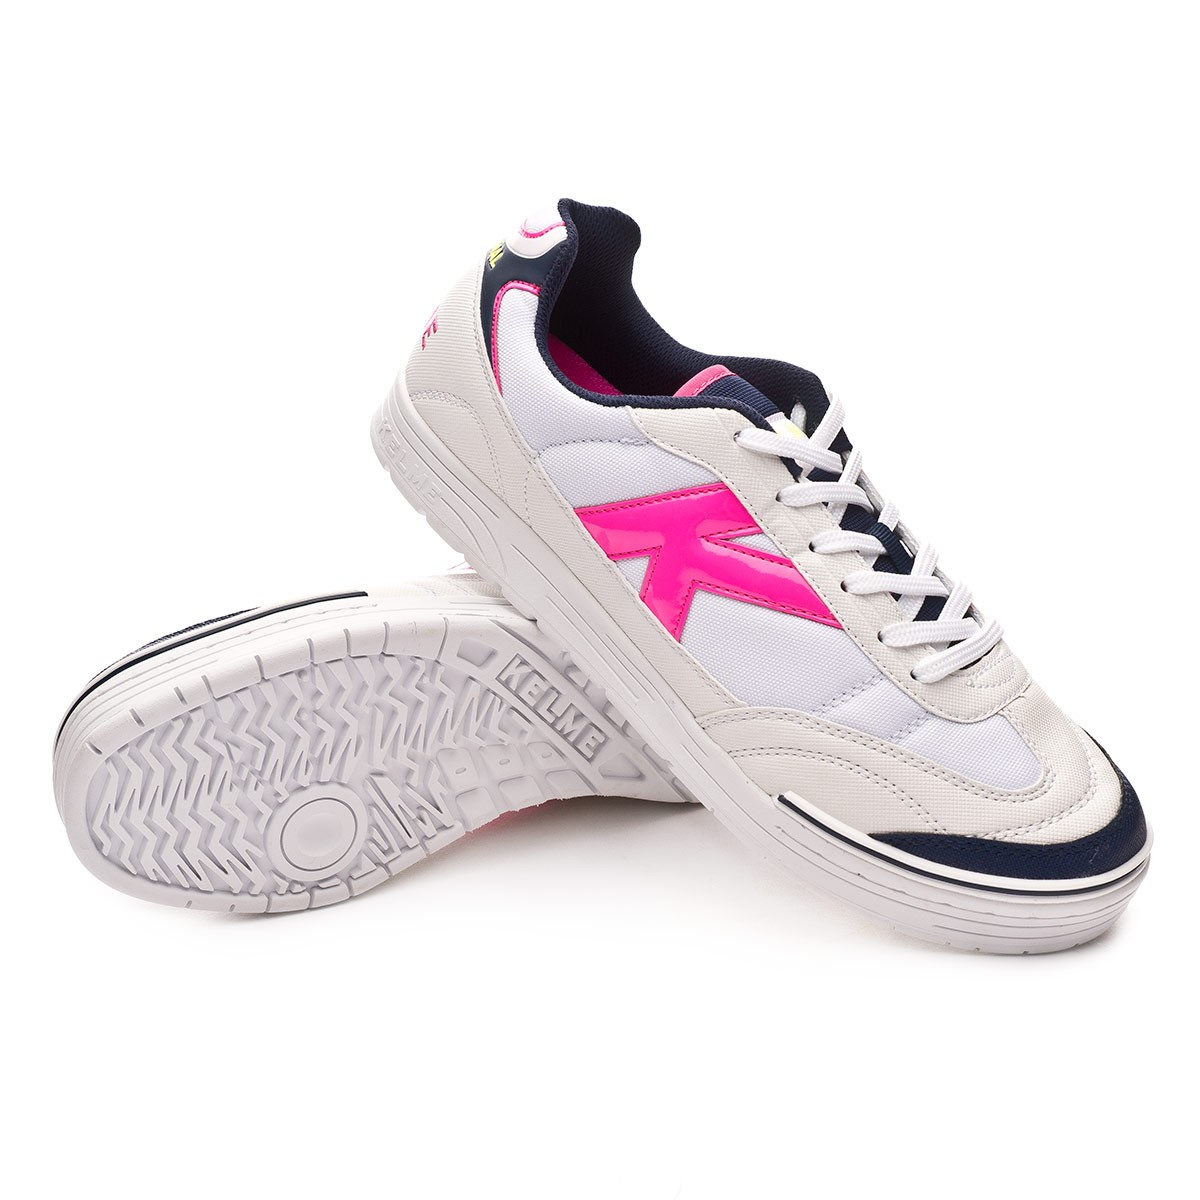 Chaussures de Football Mixte Adulte Kelme Trueno Sala